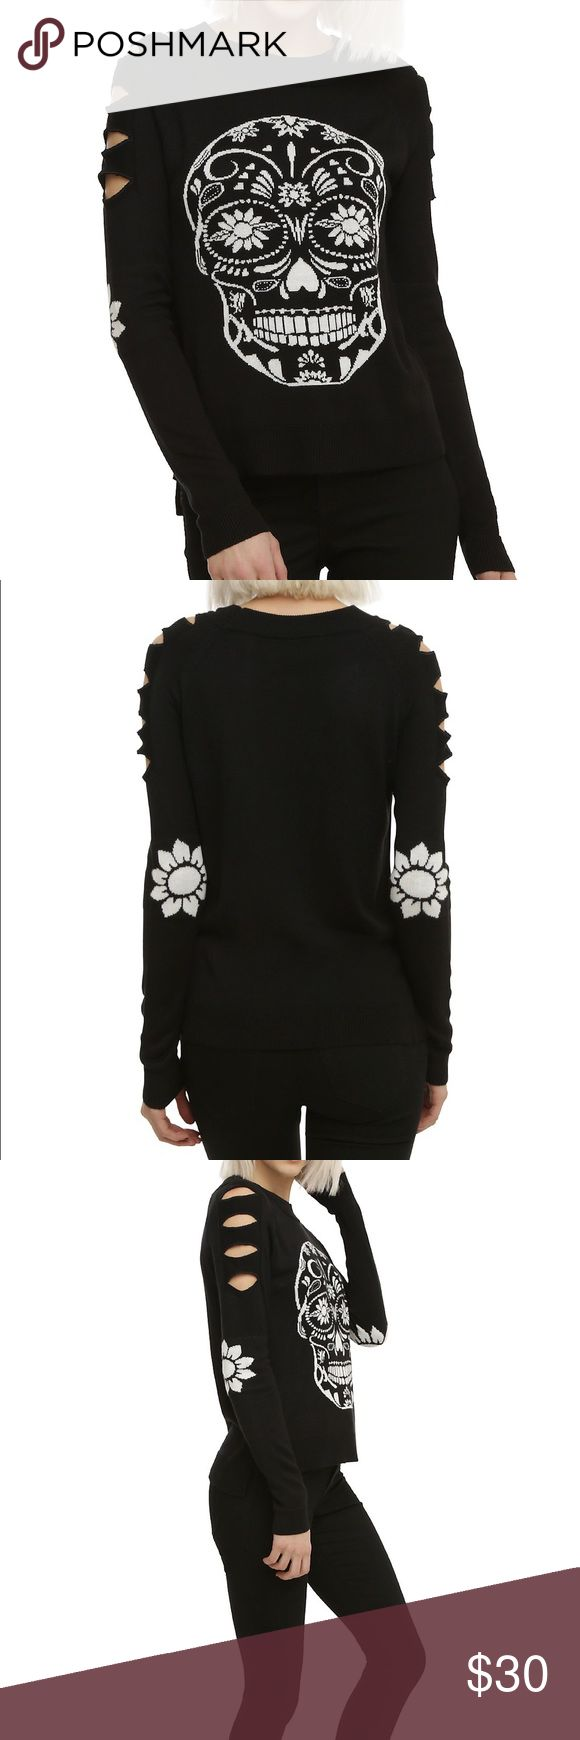 Sugar skull sweater Black pullover sweater with a white sugar skull graphic on the front, flower graphic on elbows and slash detail on the shoulders. Brand new with tags. Hot Topic Sweaters